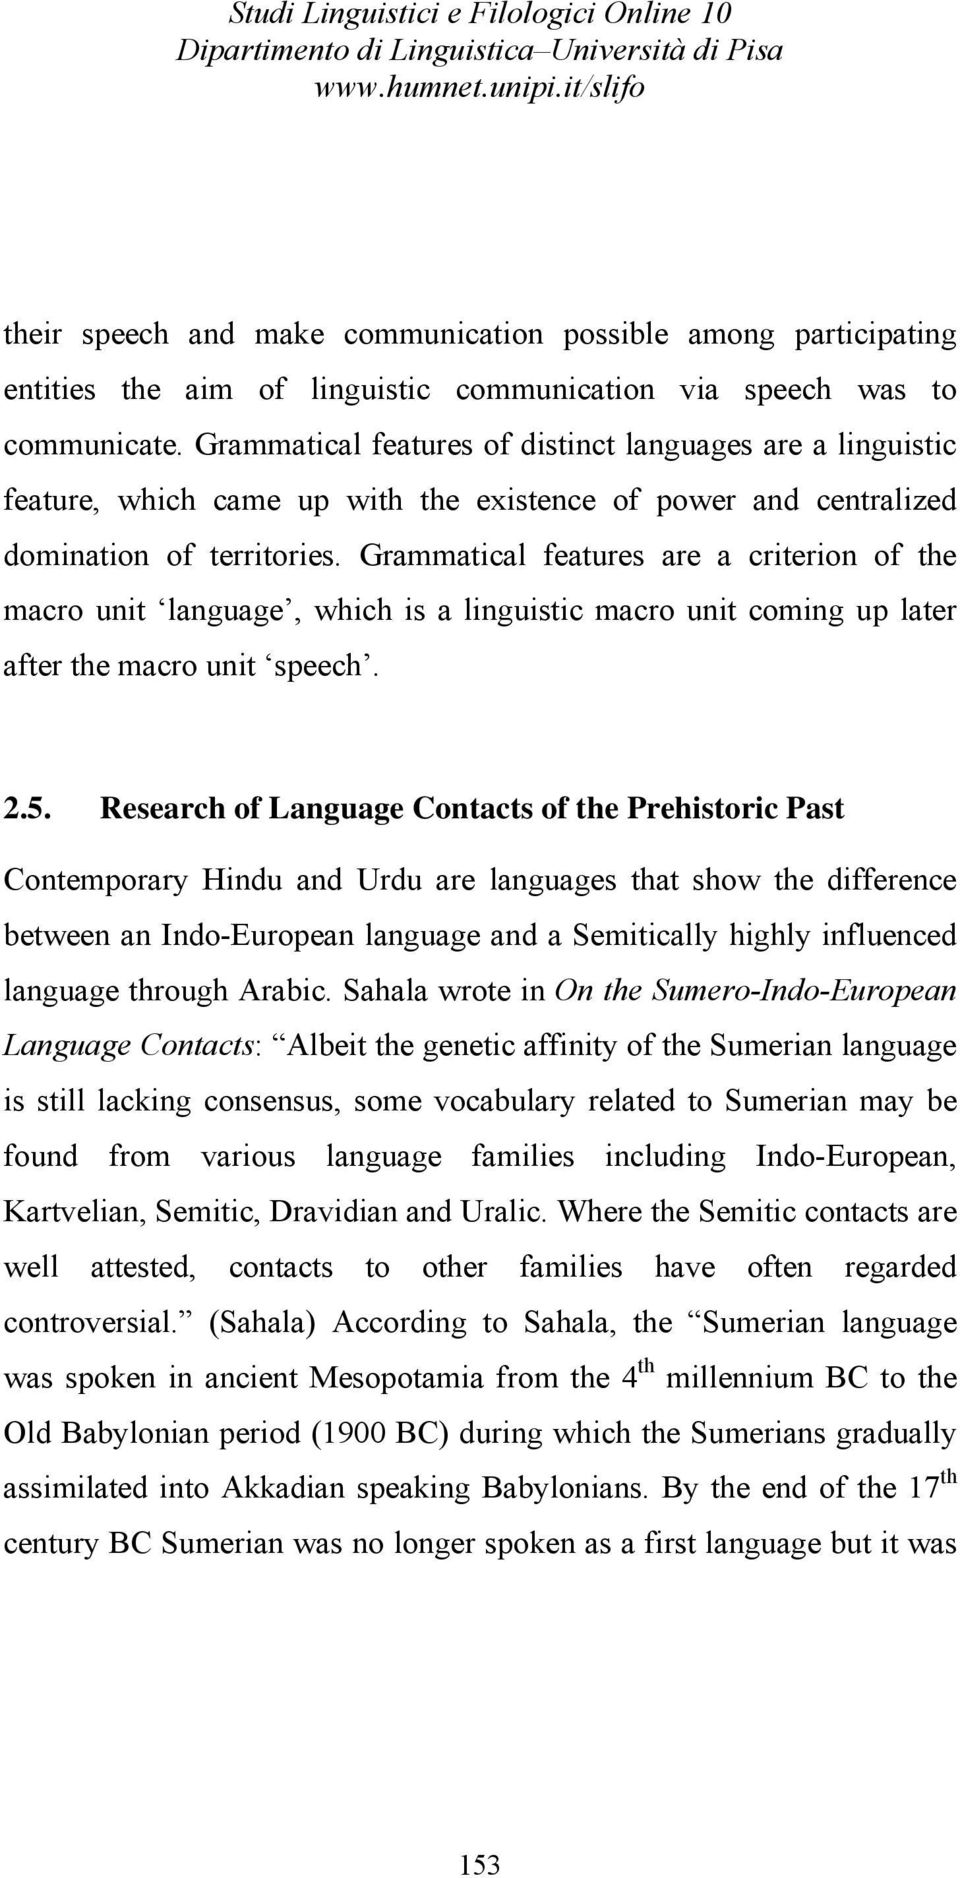 Grammatical features are a criterion of the macro unit language, which is a linguistic macro unit coming up later after the macro unit speech. 2.5.